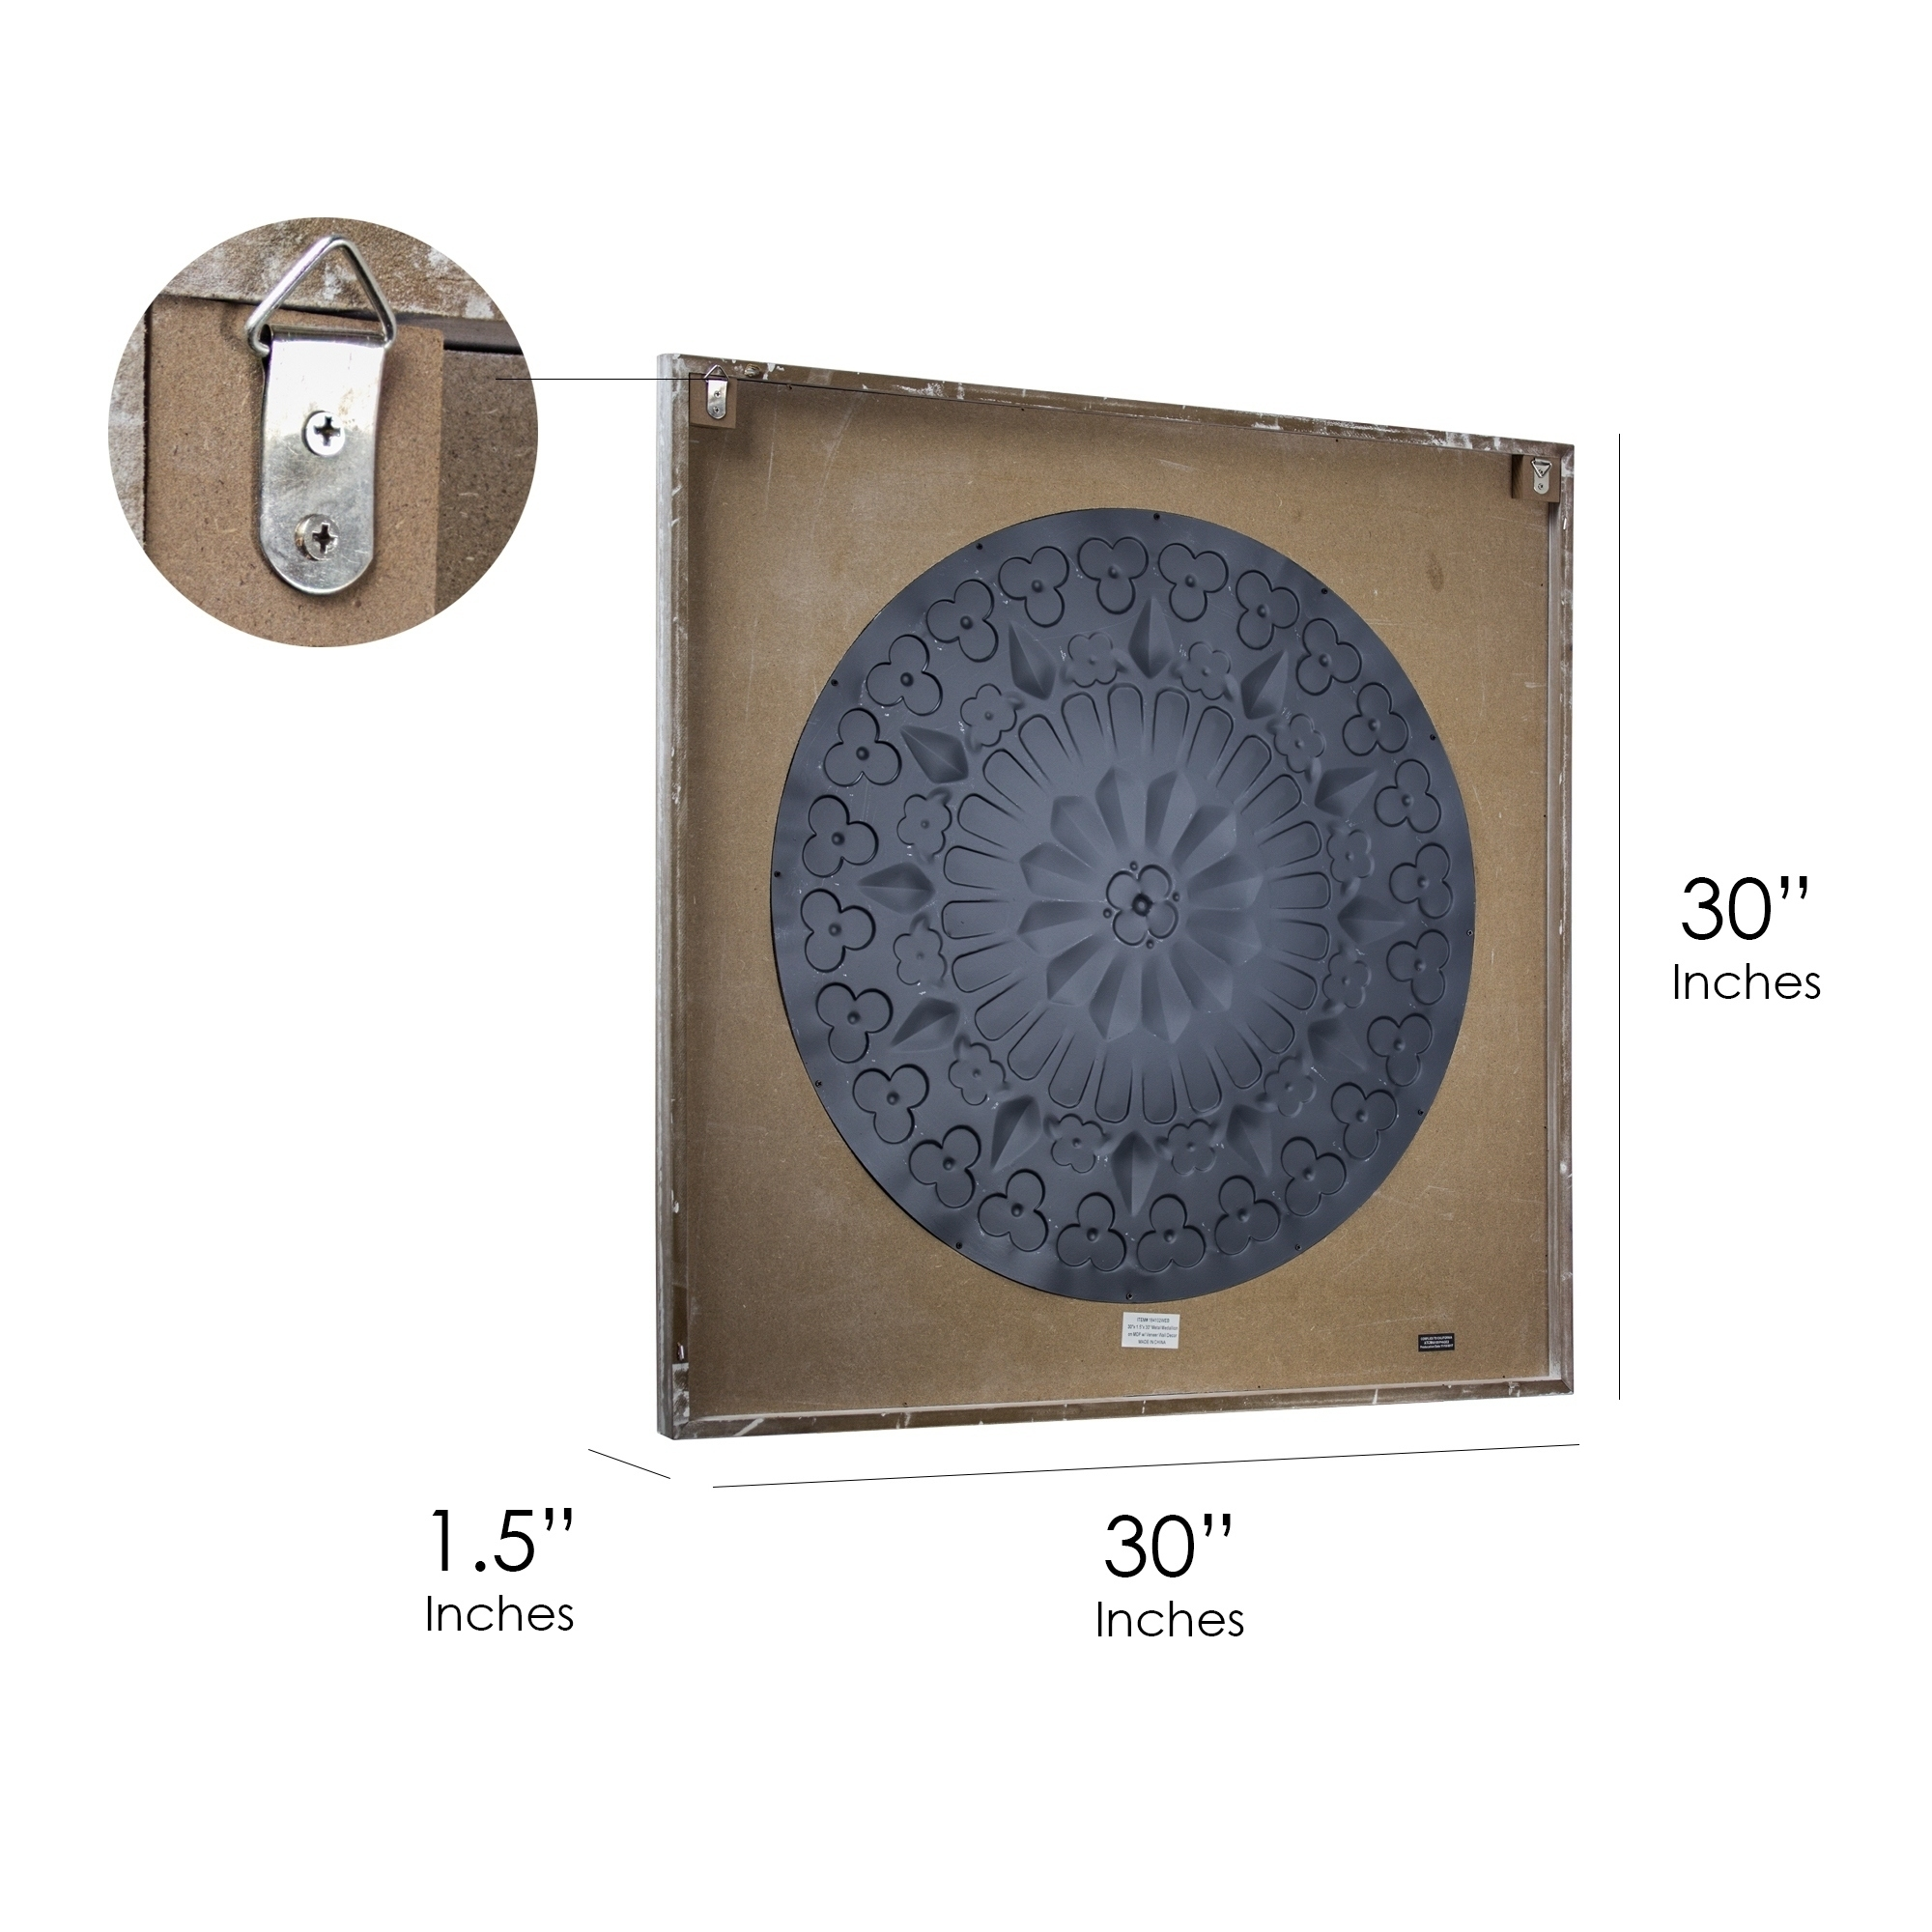 Shop American Art Decor Framed Metal Medallion On Wood Wall Décor With Regard To Most Up To Date Wood Medallion Wall Art (View 9 of 20)